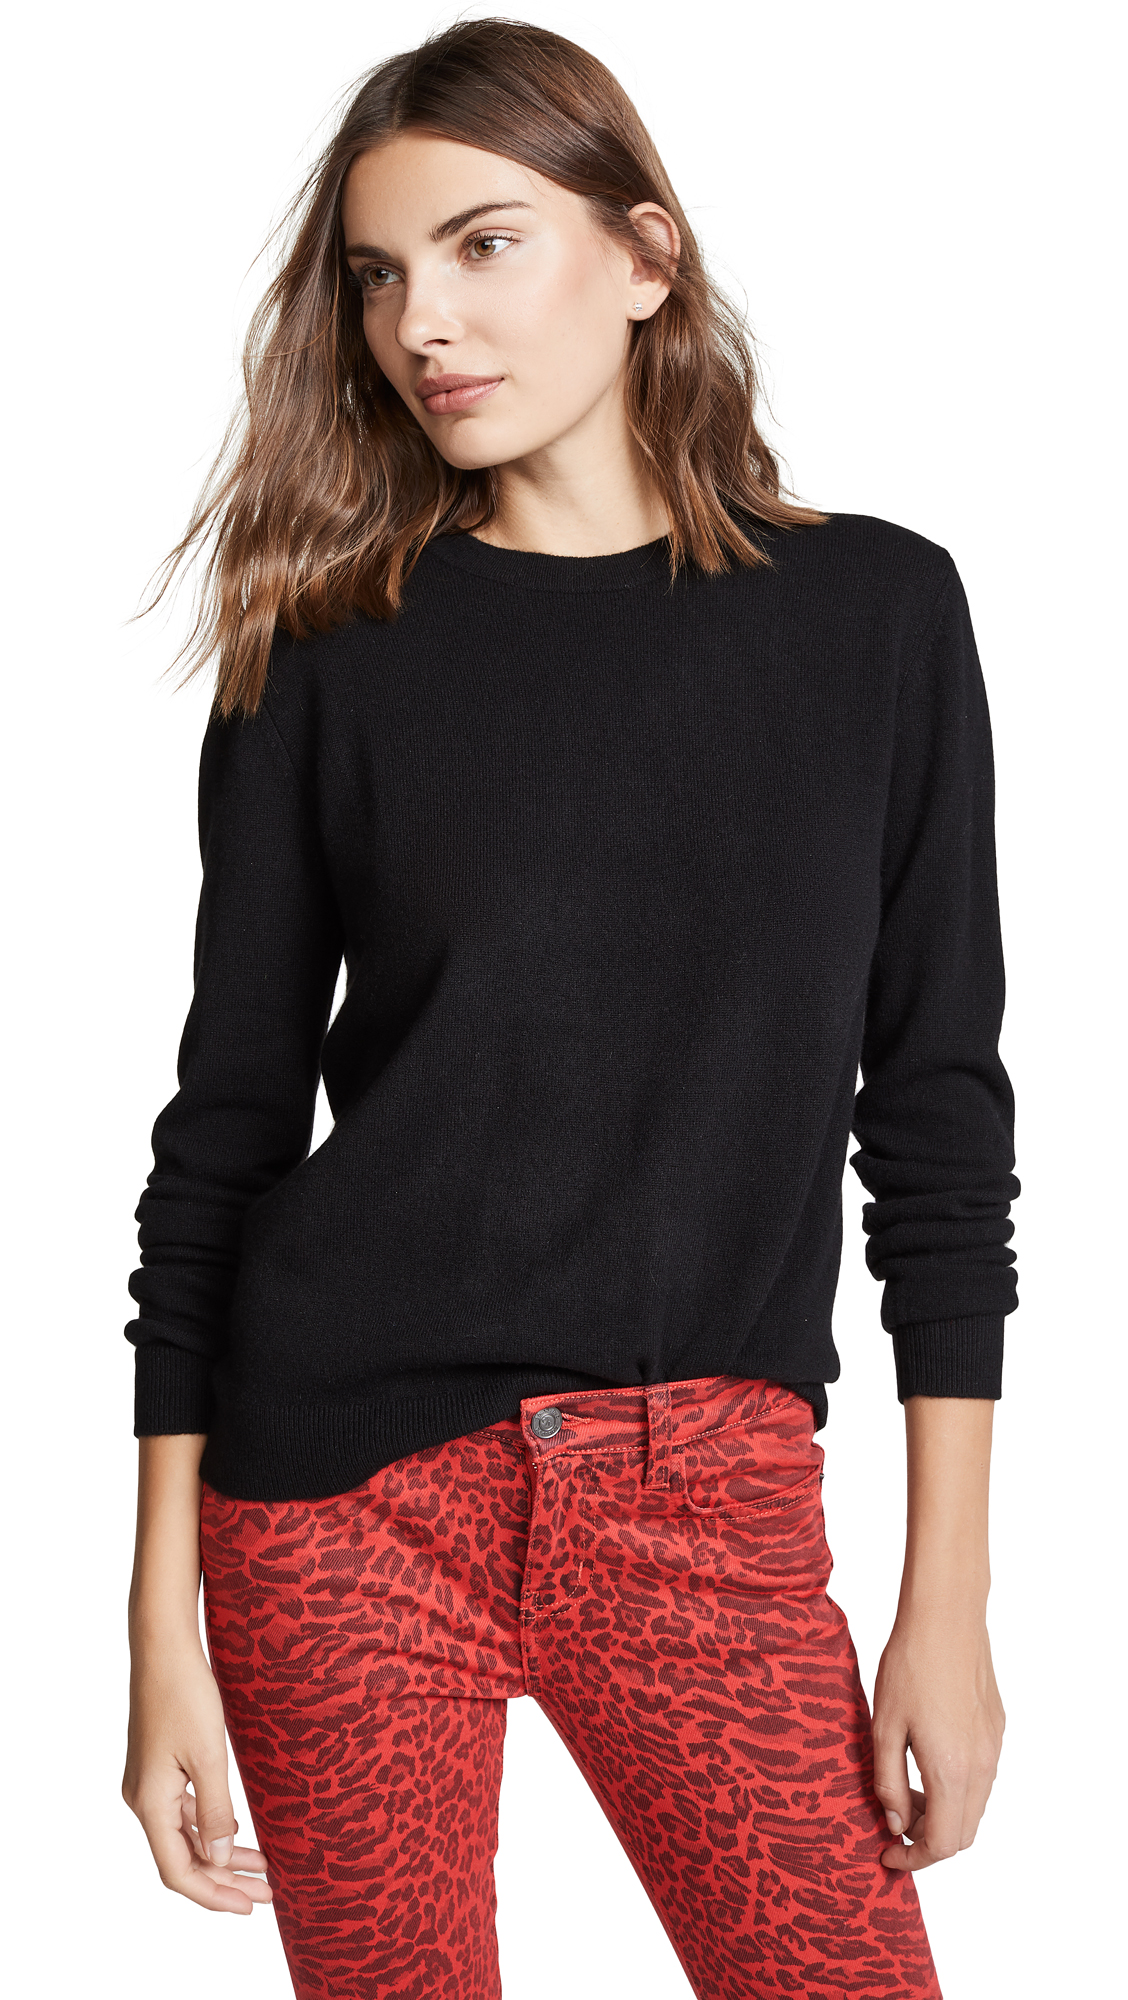 BOP BASICS Boxy Cashmere Sweater in Black